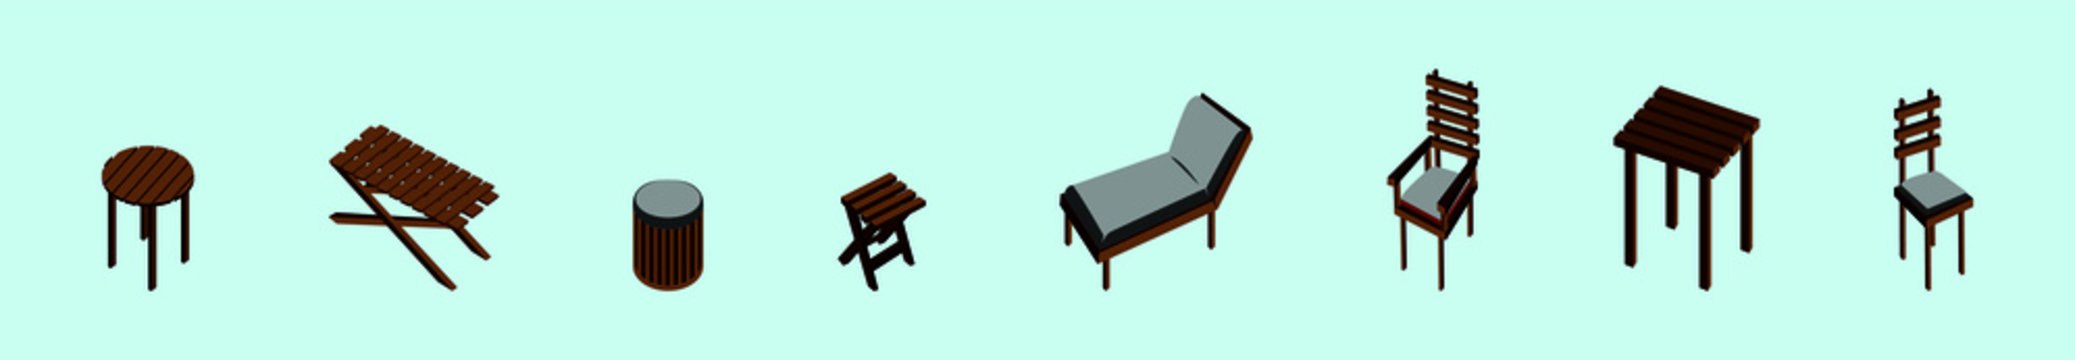 set of garden furniture and sun loungers icon design template with various models. vector illustration